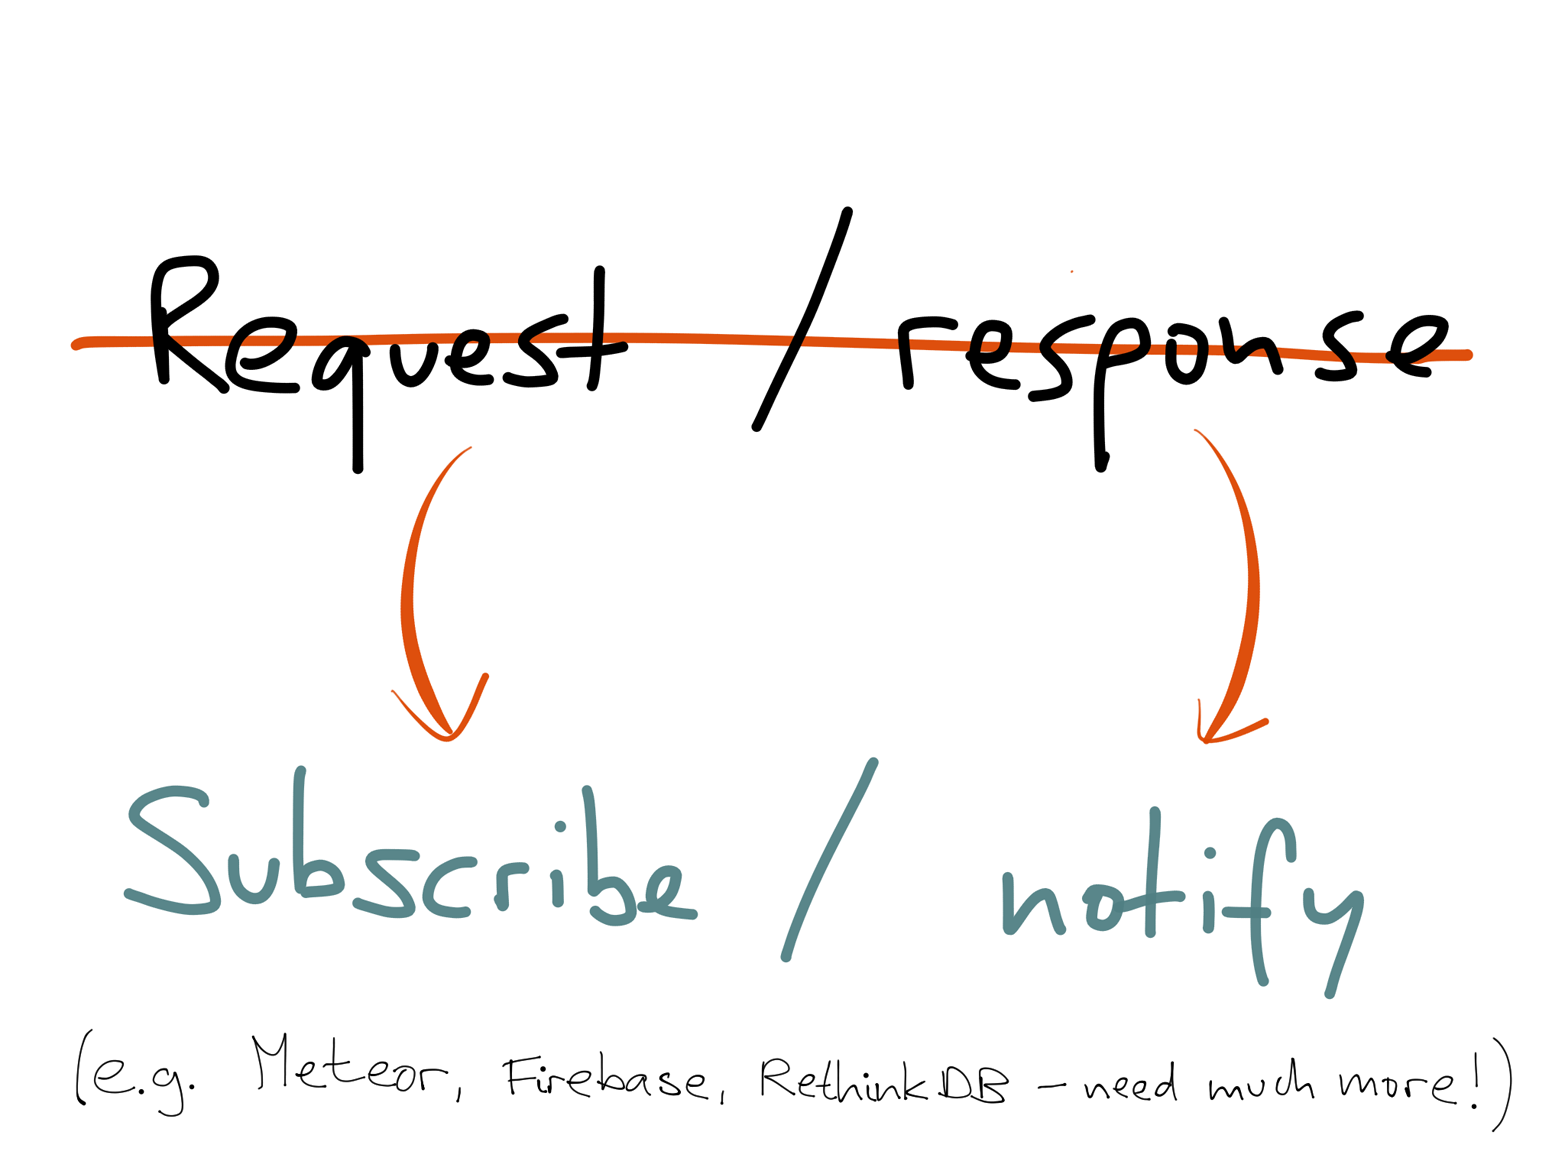 To support dynamically updated views we need to move away from request/response RPC models and use push-based publish-subscribe dataflow everywhere.